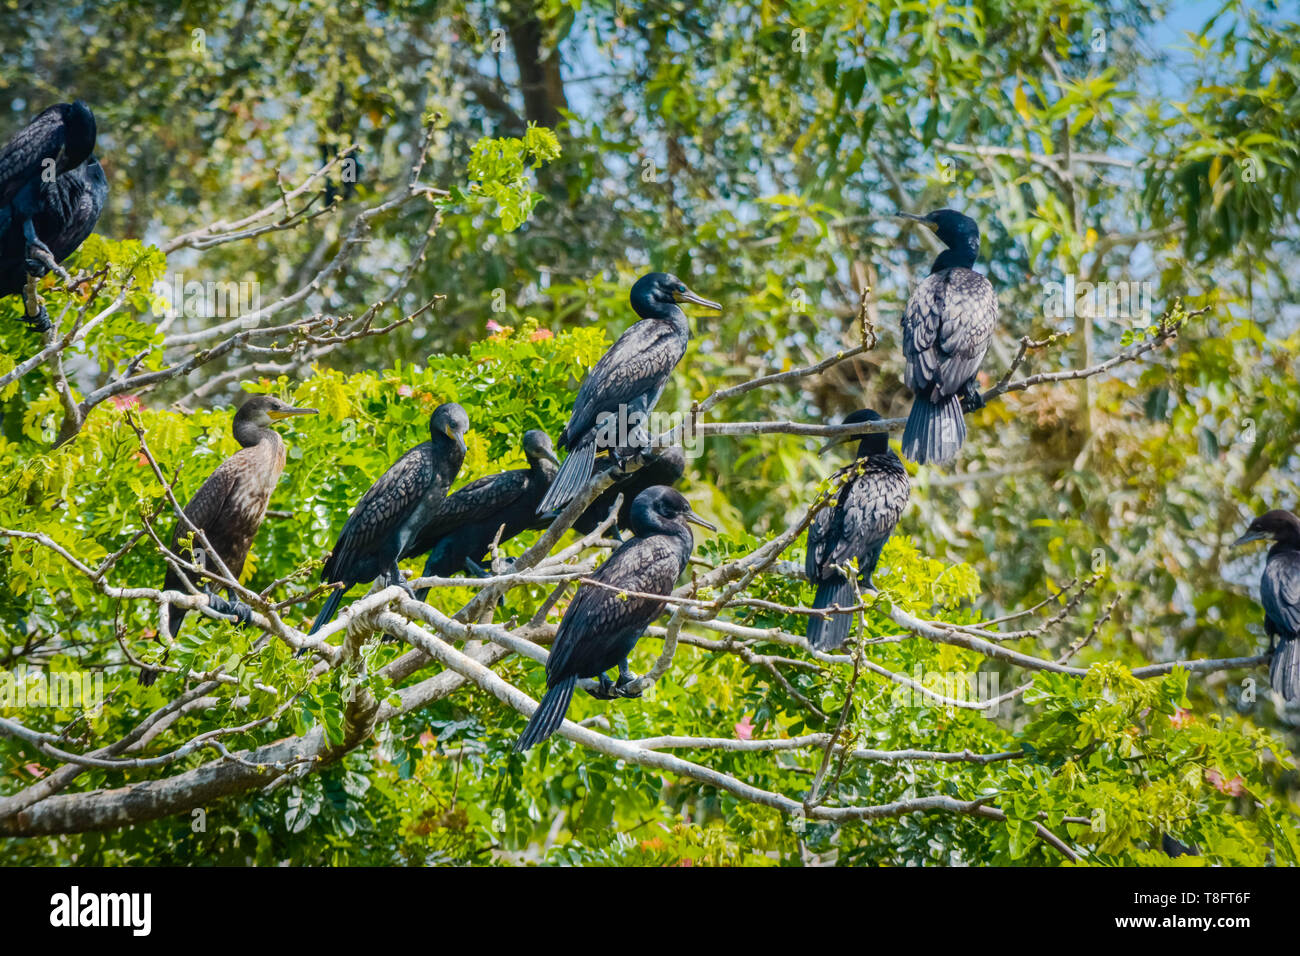 Group Of Darter Birds Sitting On A Tree - Stock Image